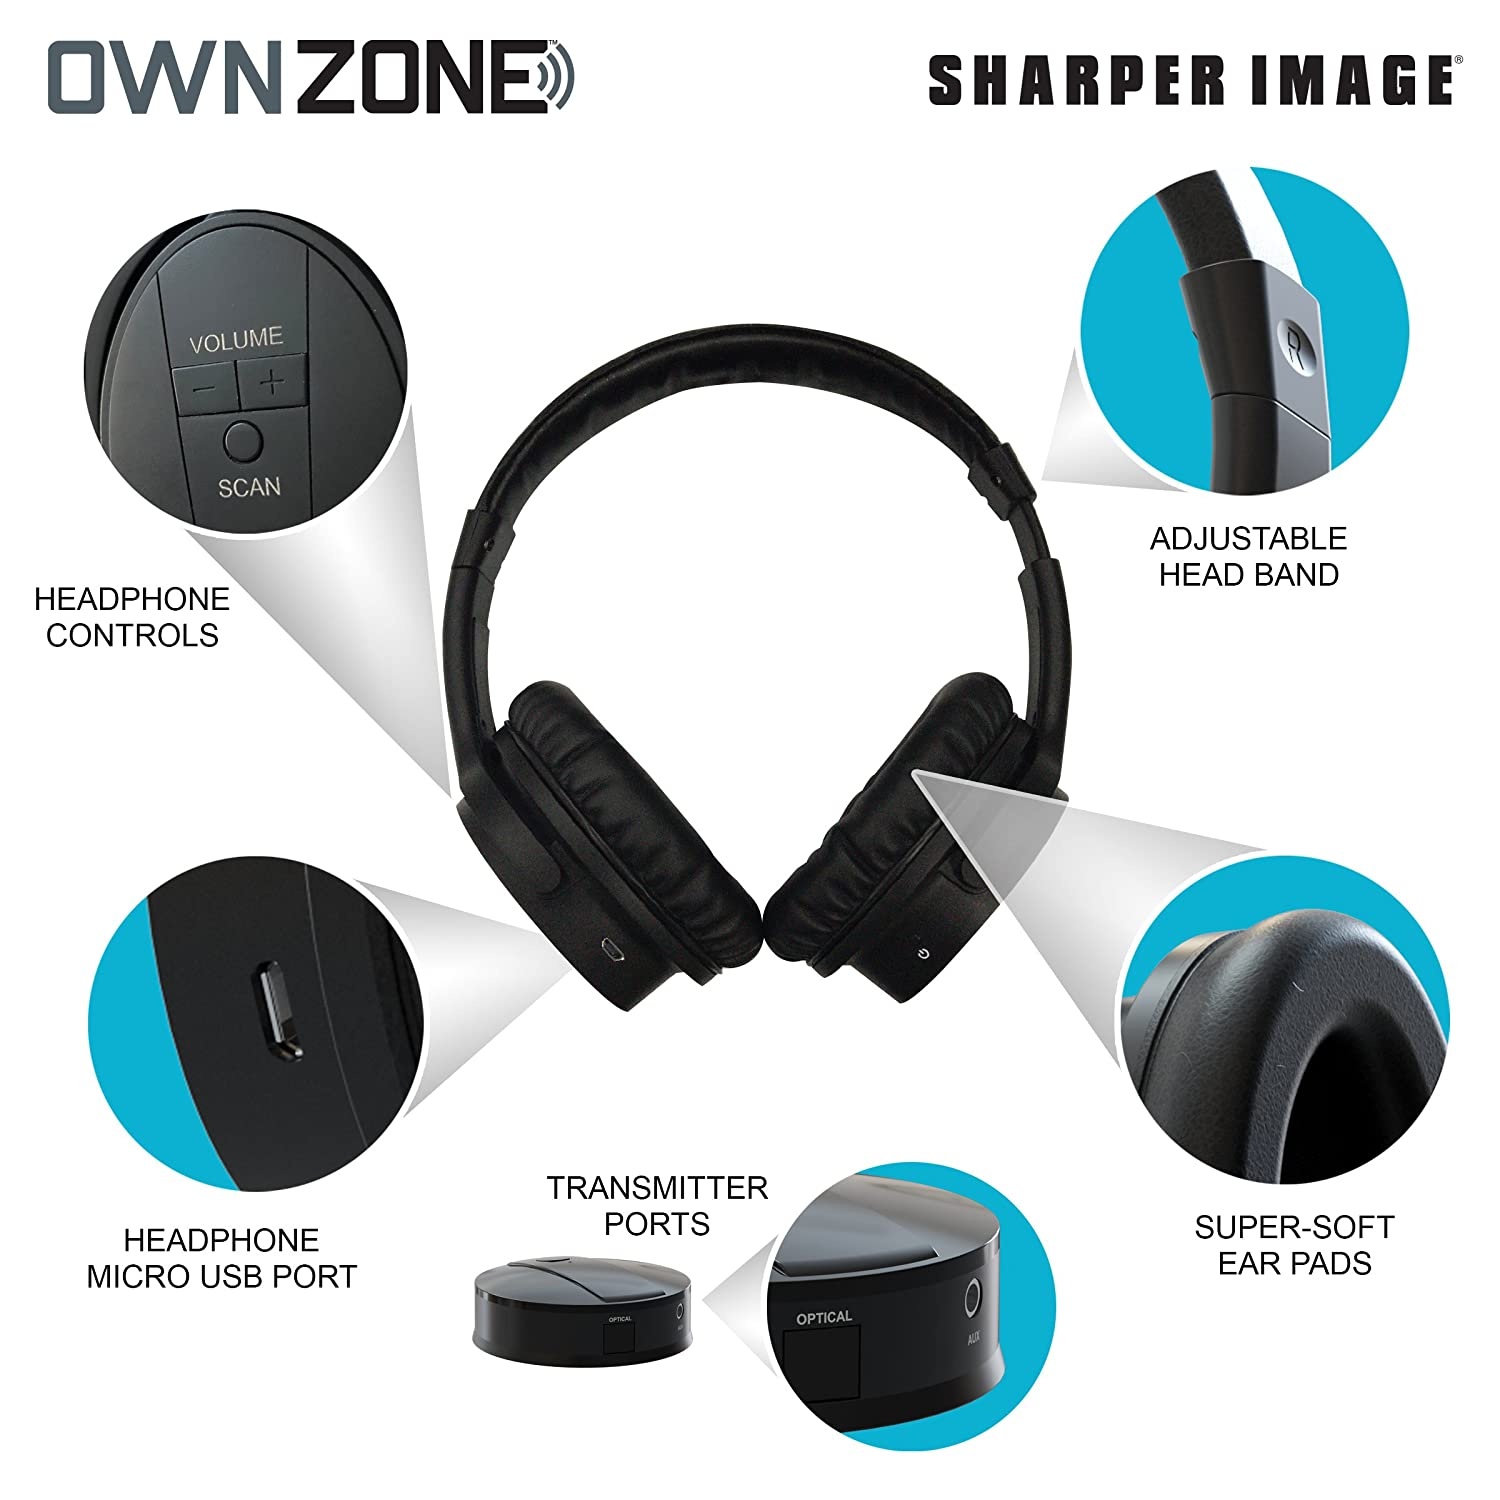 Amazoncom Sharper Image Own Zone Wireless Rechargeable Tv